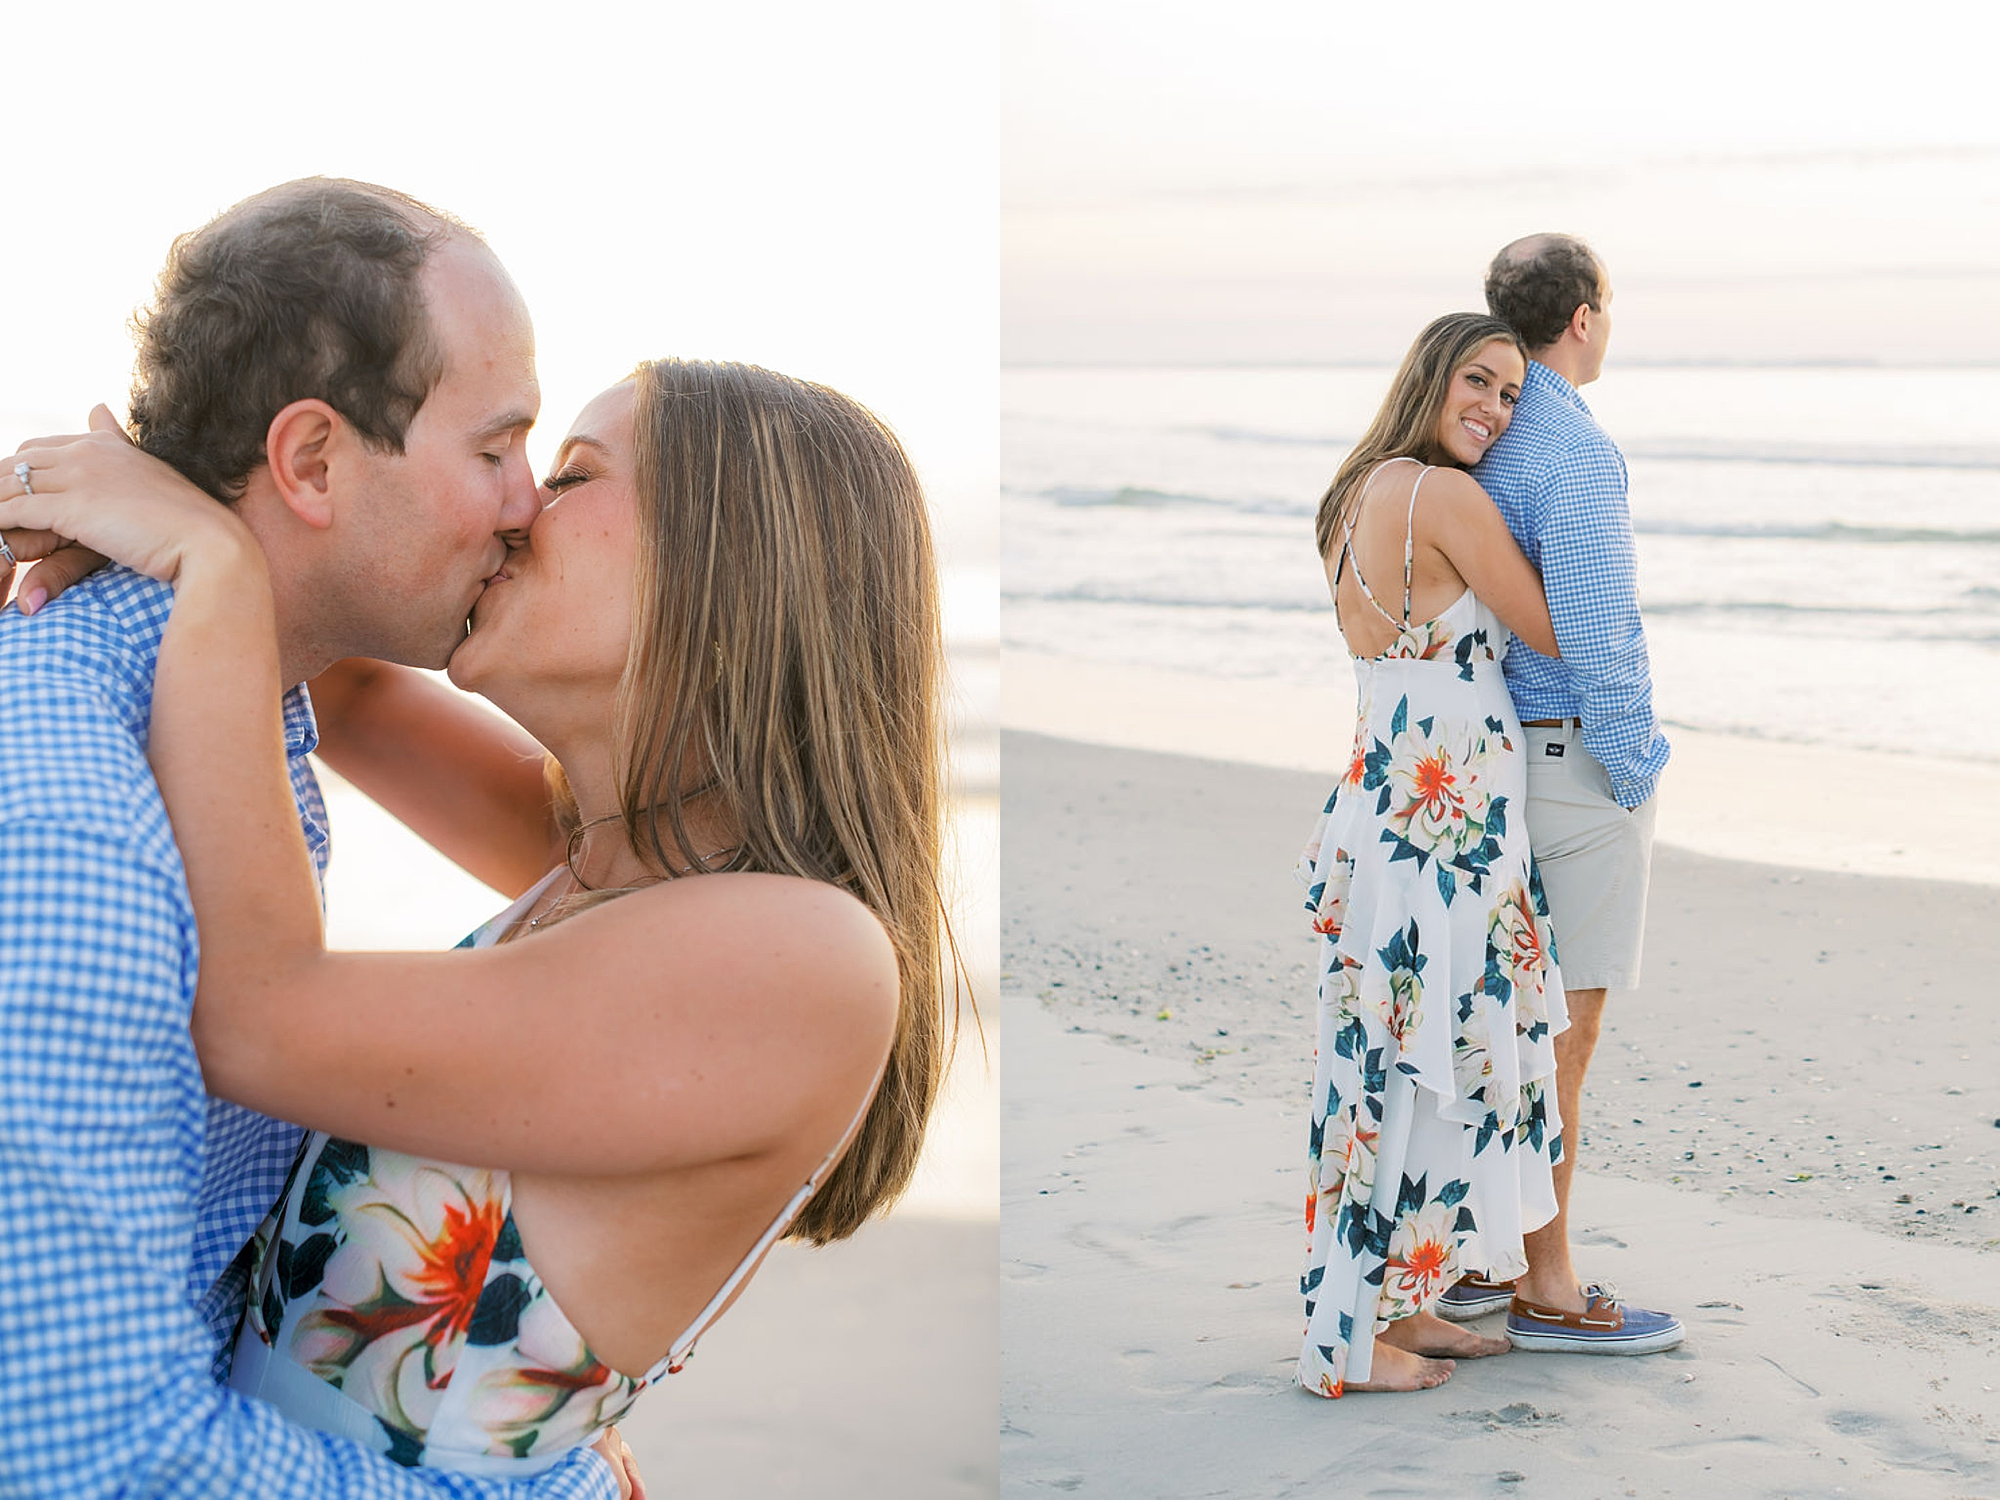 Organic and Romantic Engagement Photography in Ocean City NJ by Magdalena Studios 0004